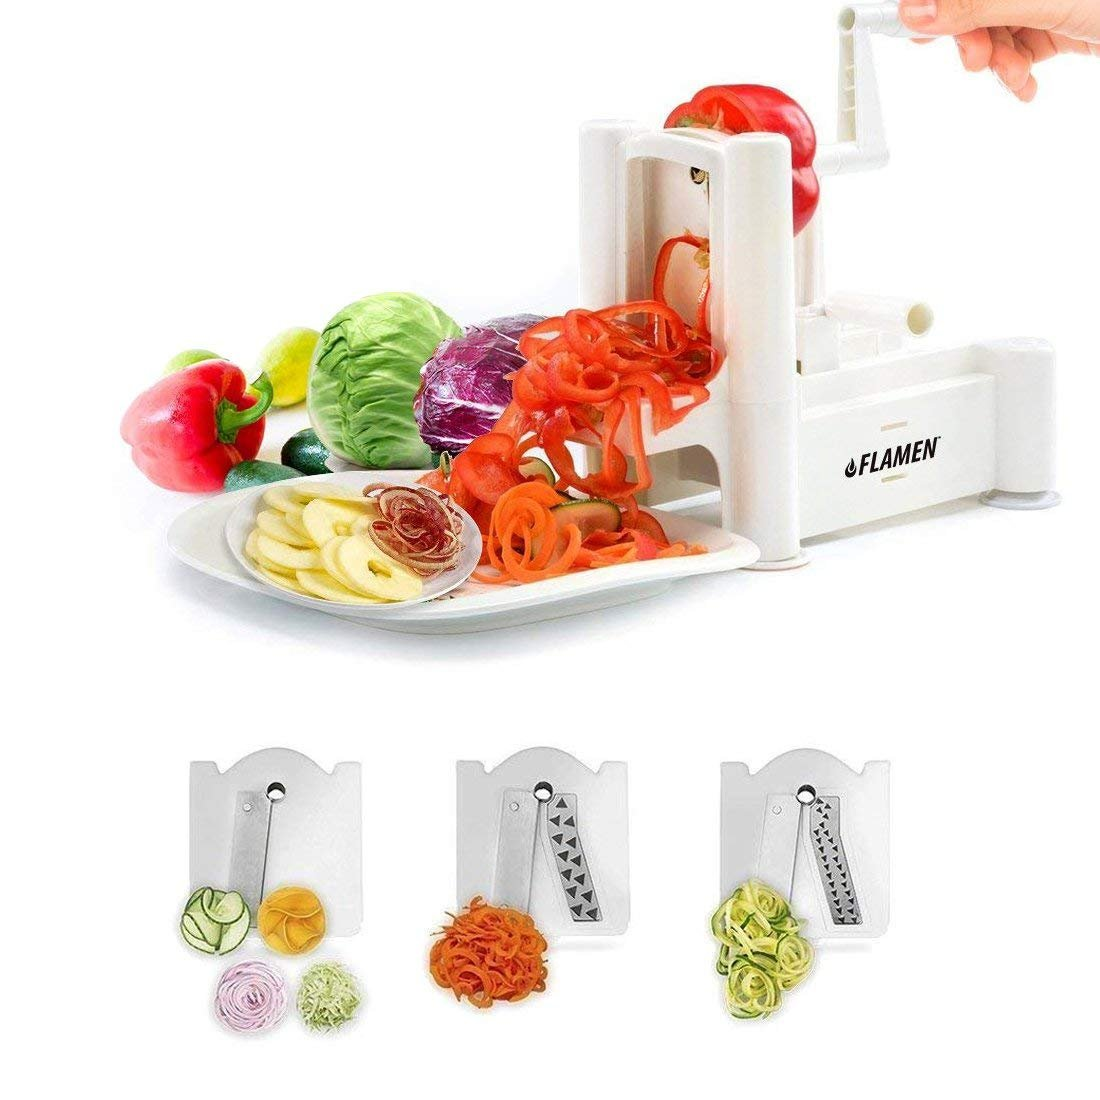 Flamen Tri-Blade Slicer Vegetable Spiralizer and Fruit Spiralizing Slicer, Kitchen Cutter Tool, Veggie Spaghetti Maker for Low Carb/Paleo/Gluten-Free Meals Aspectek HG1903